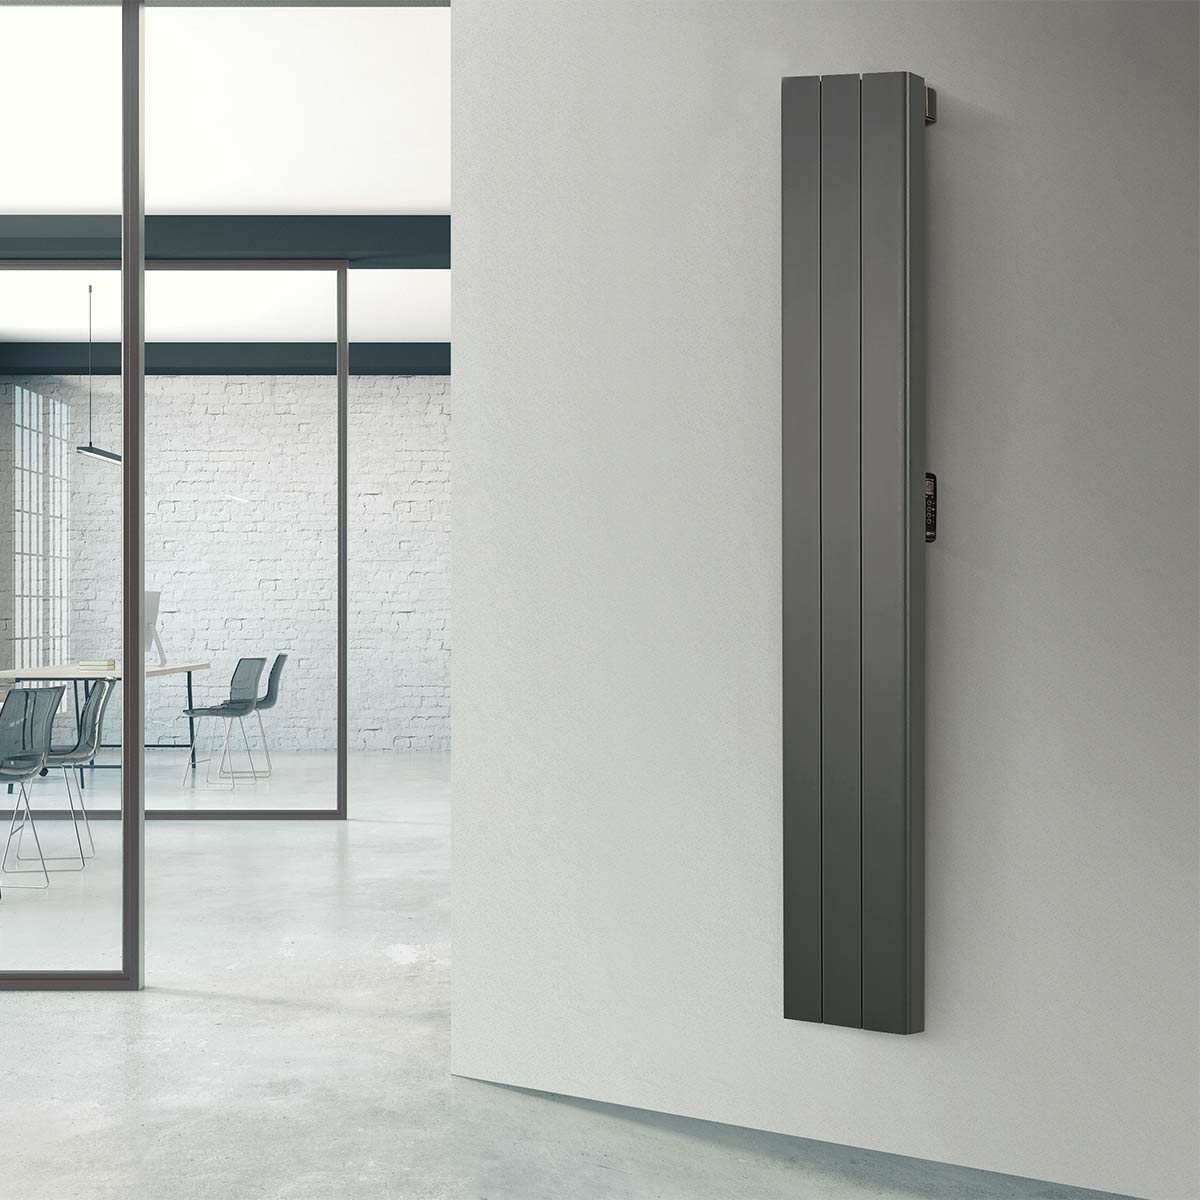 Rointe Palaos vertical radiators come in white or black for narrow spaces